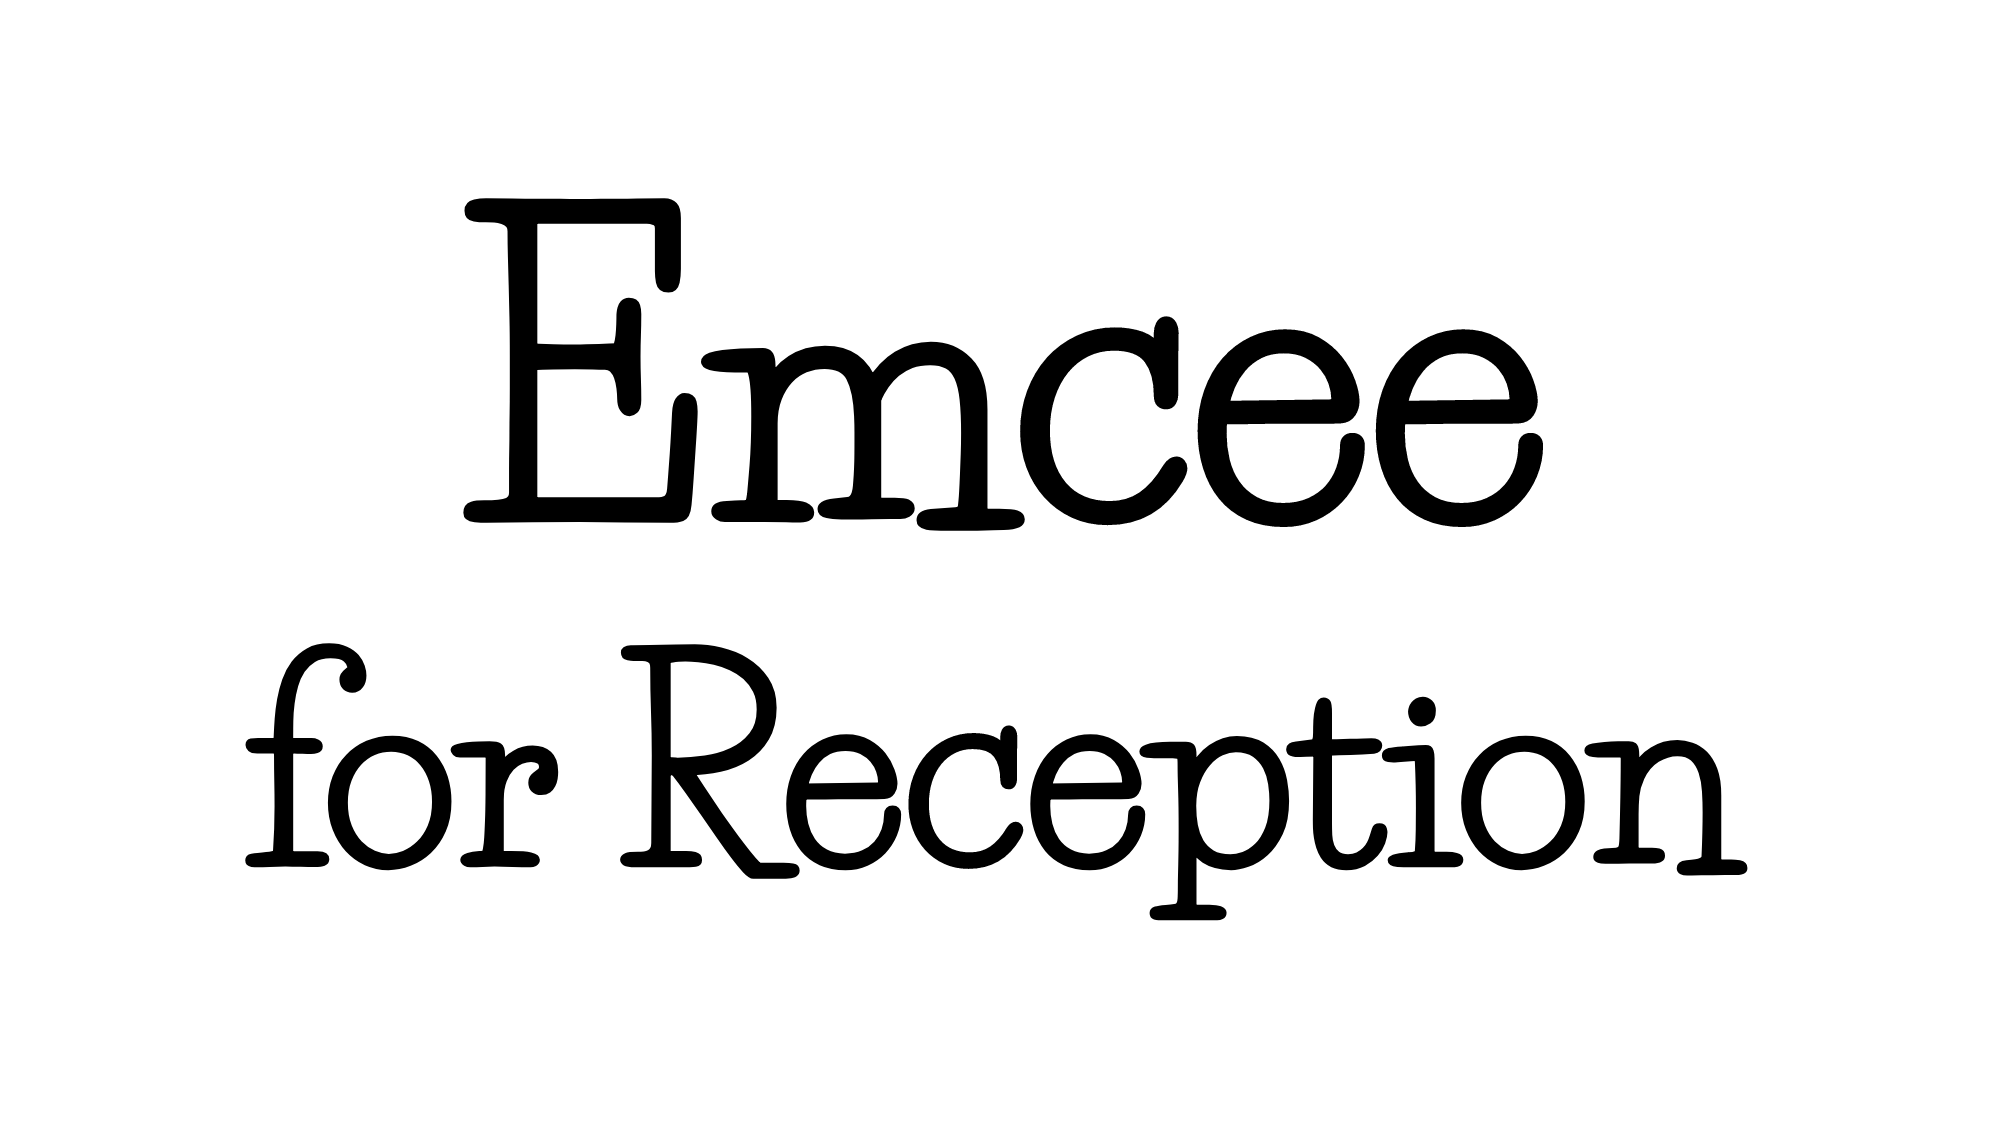 $550 - If you need an emcee for your wedding, I can also perform those duties and guide your wedding party through to the end of the night. As your emcee, I'll act as the event coordinator on the night with the reception's catering and entertainment as well as acting as your personal liaison with all guests and speakers.